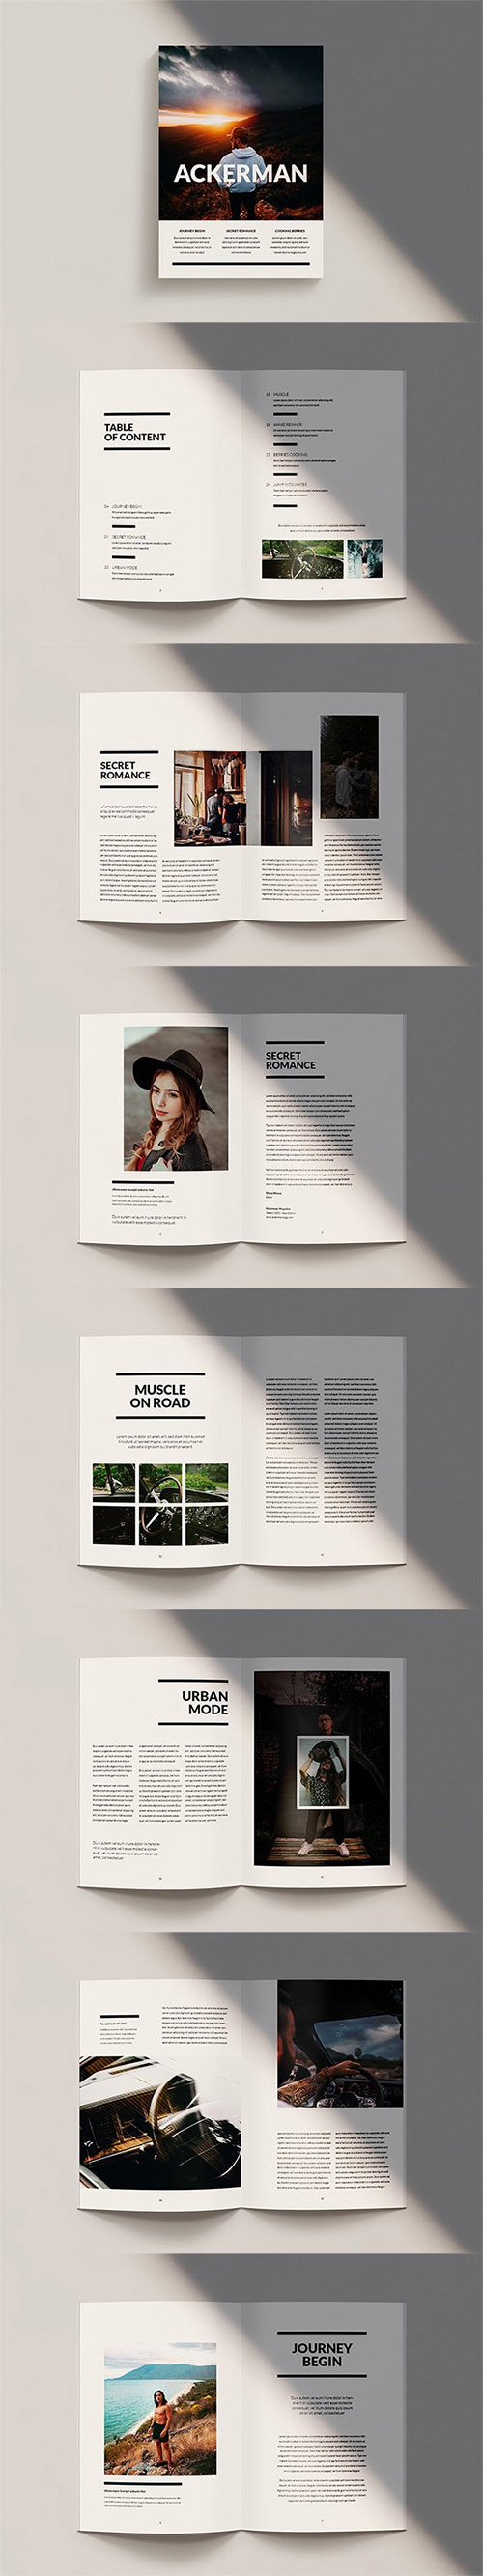 Ackerman - Magazine Template Indesign